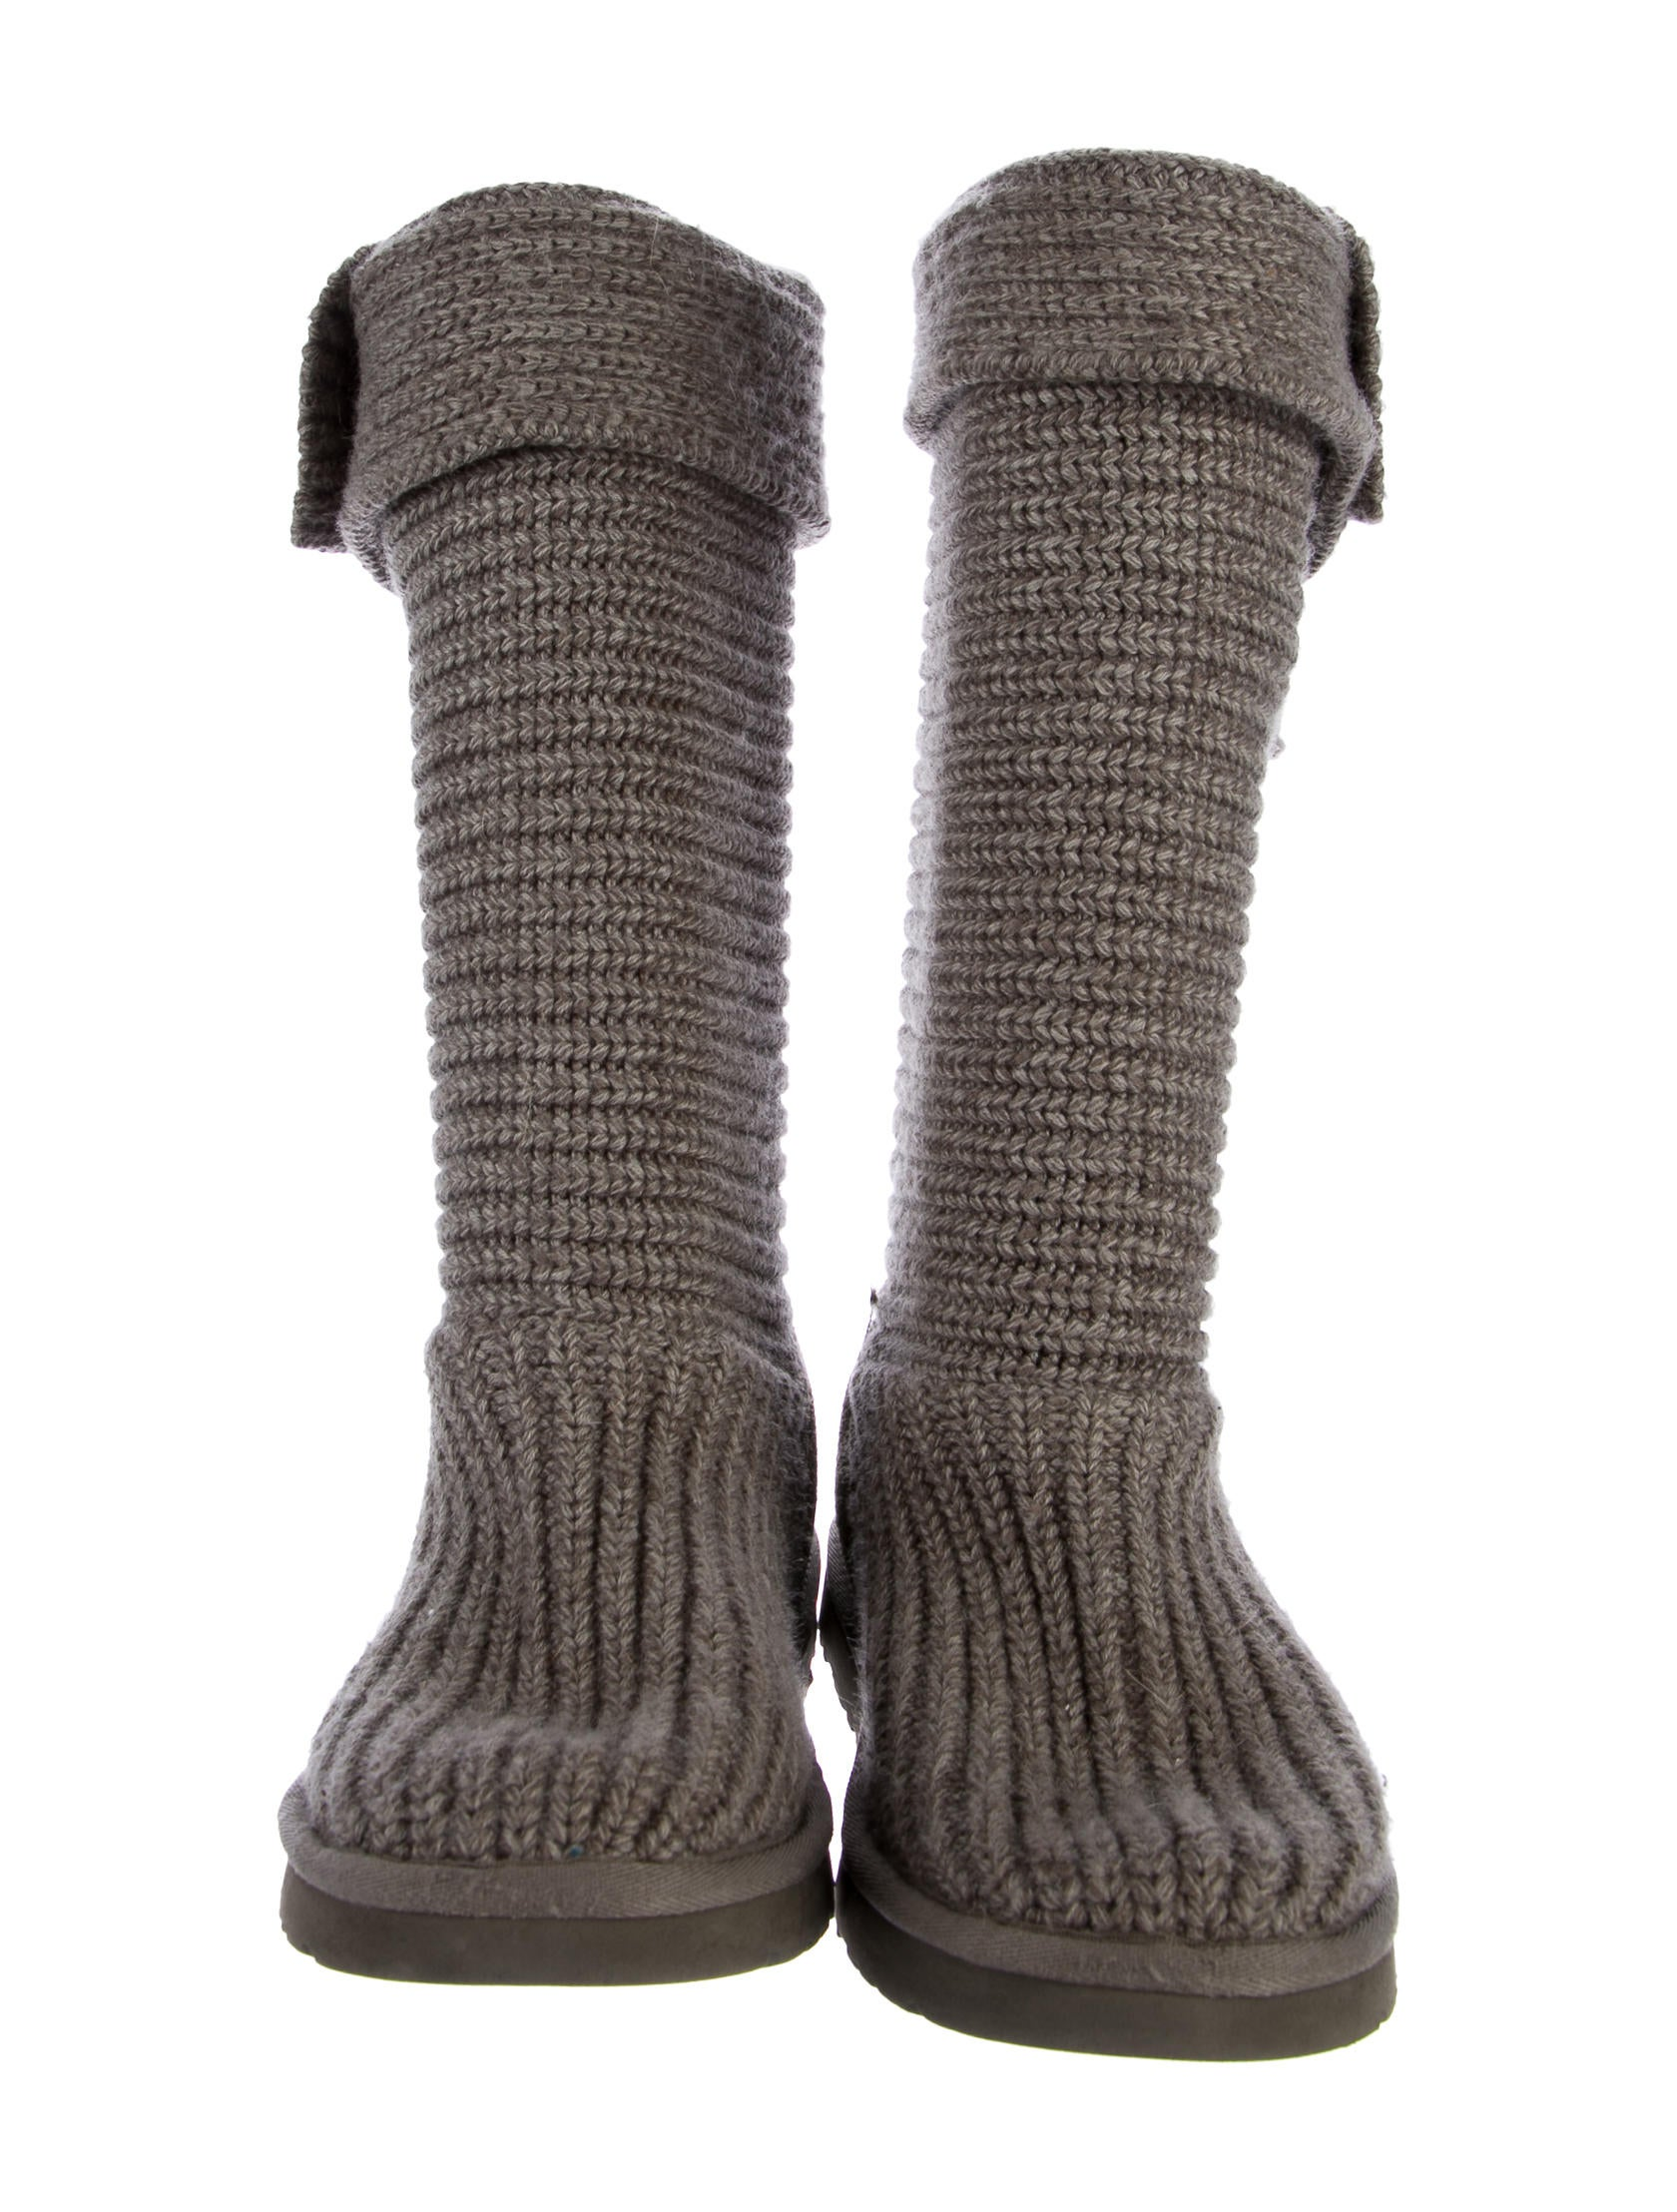 Uggs Classic Mid Calf | Division of Global Affairs